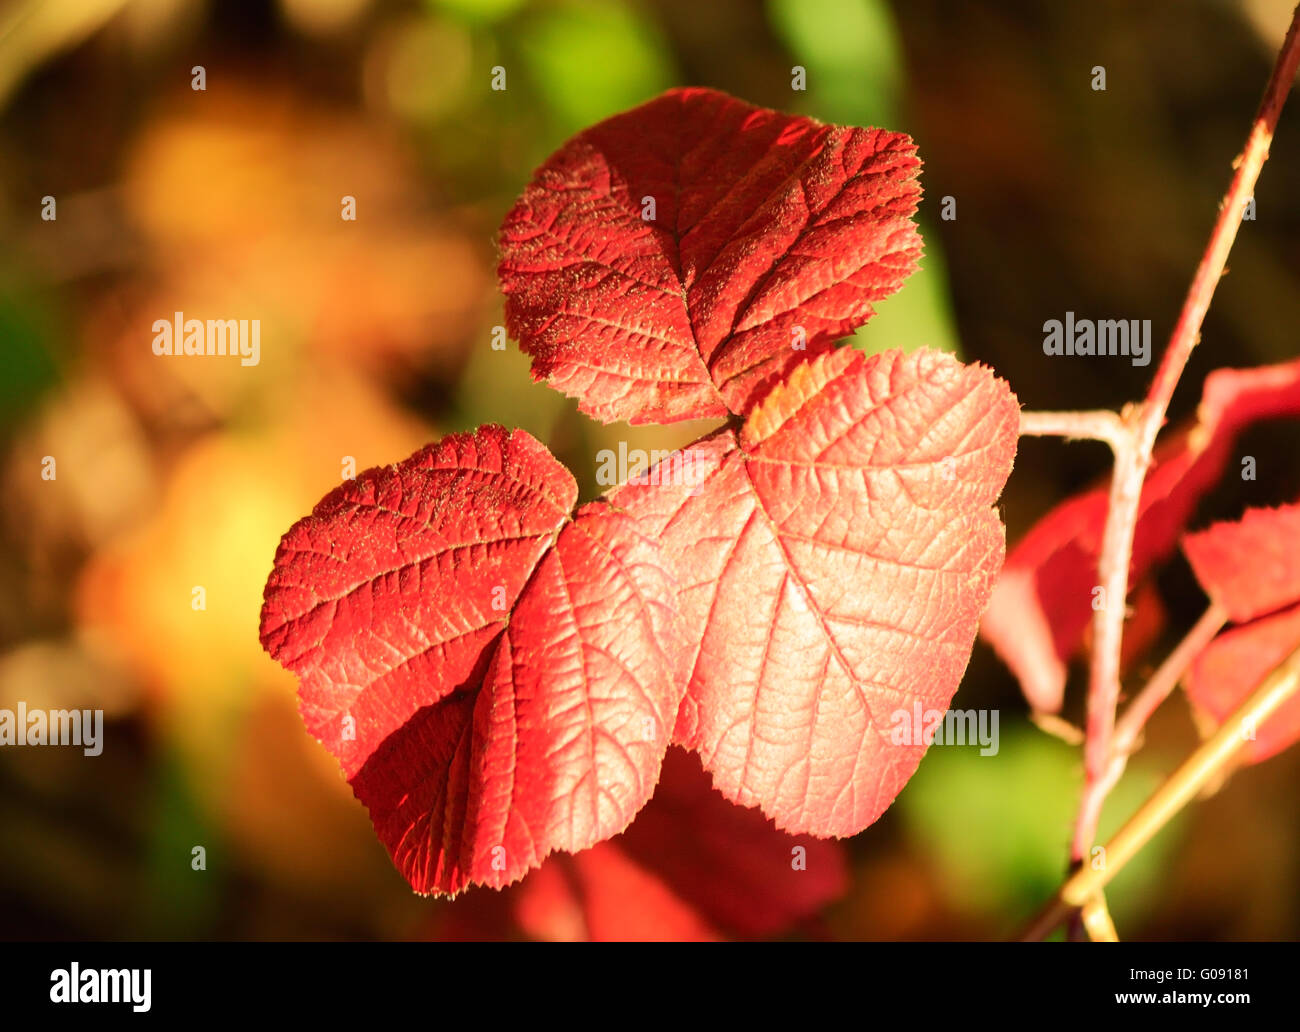 Autumn, beautiful red BlackBerry leaves. - Stock Image